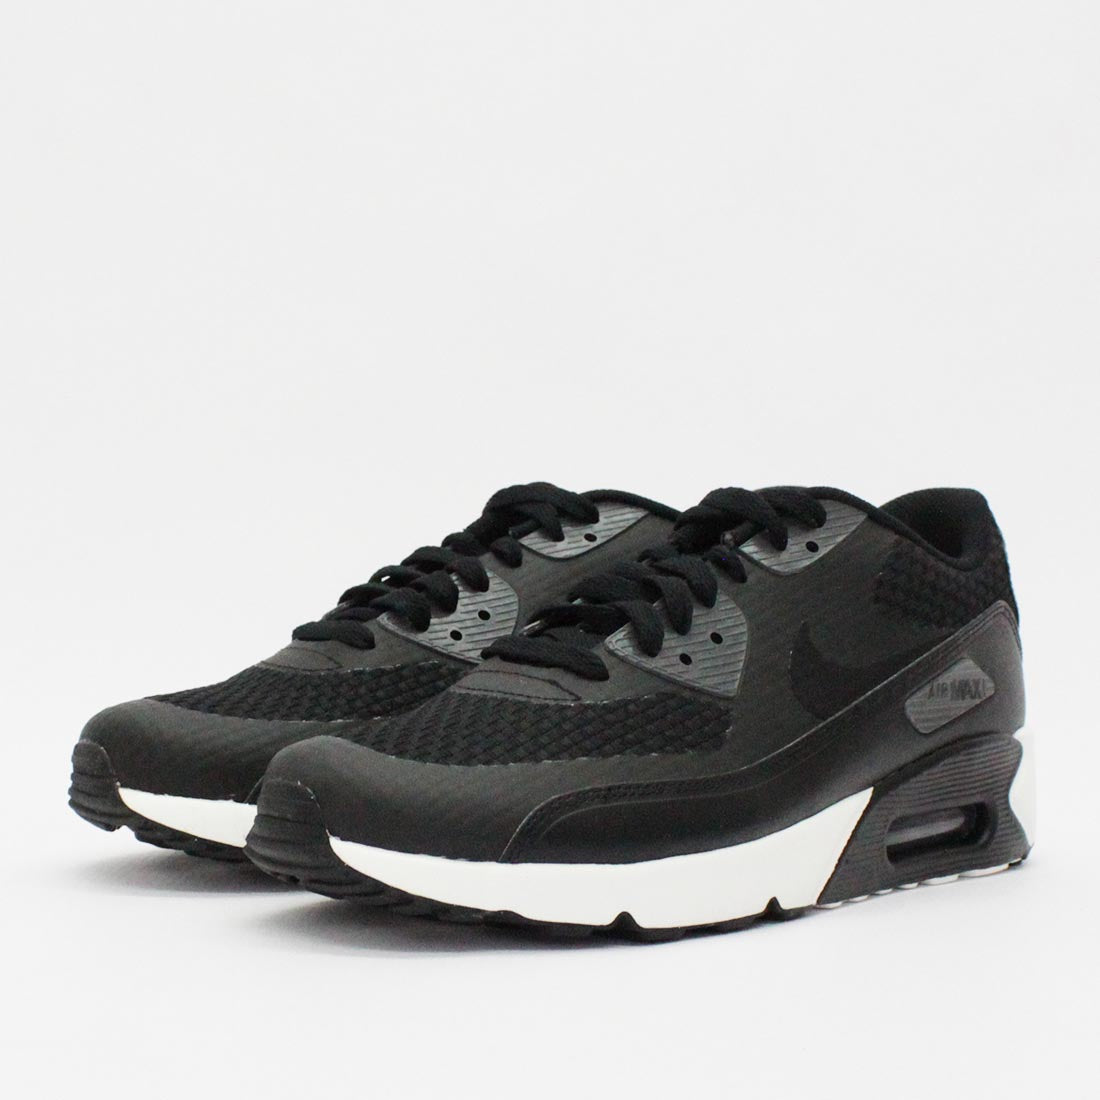 Nike Air Negro Max 90 Ultra Se Negro Air 876005 007 a359b8